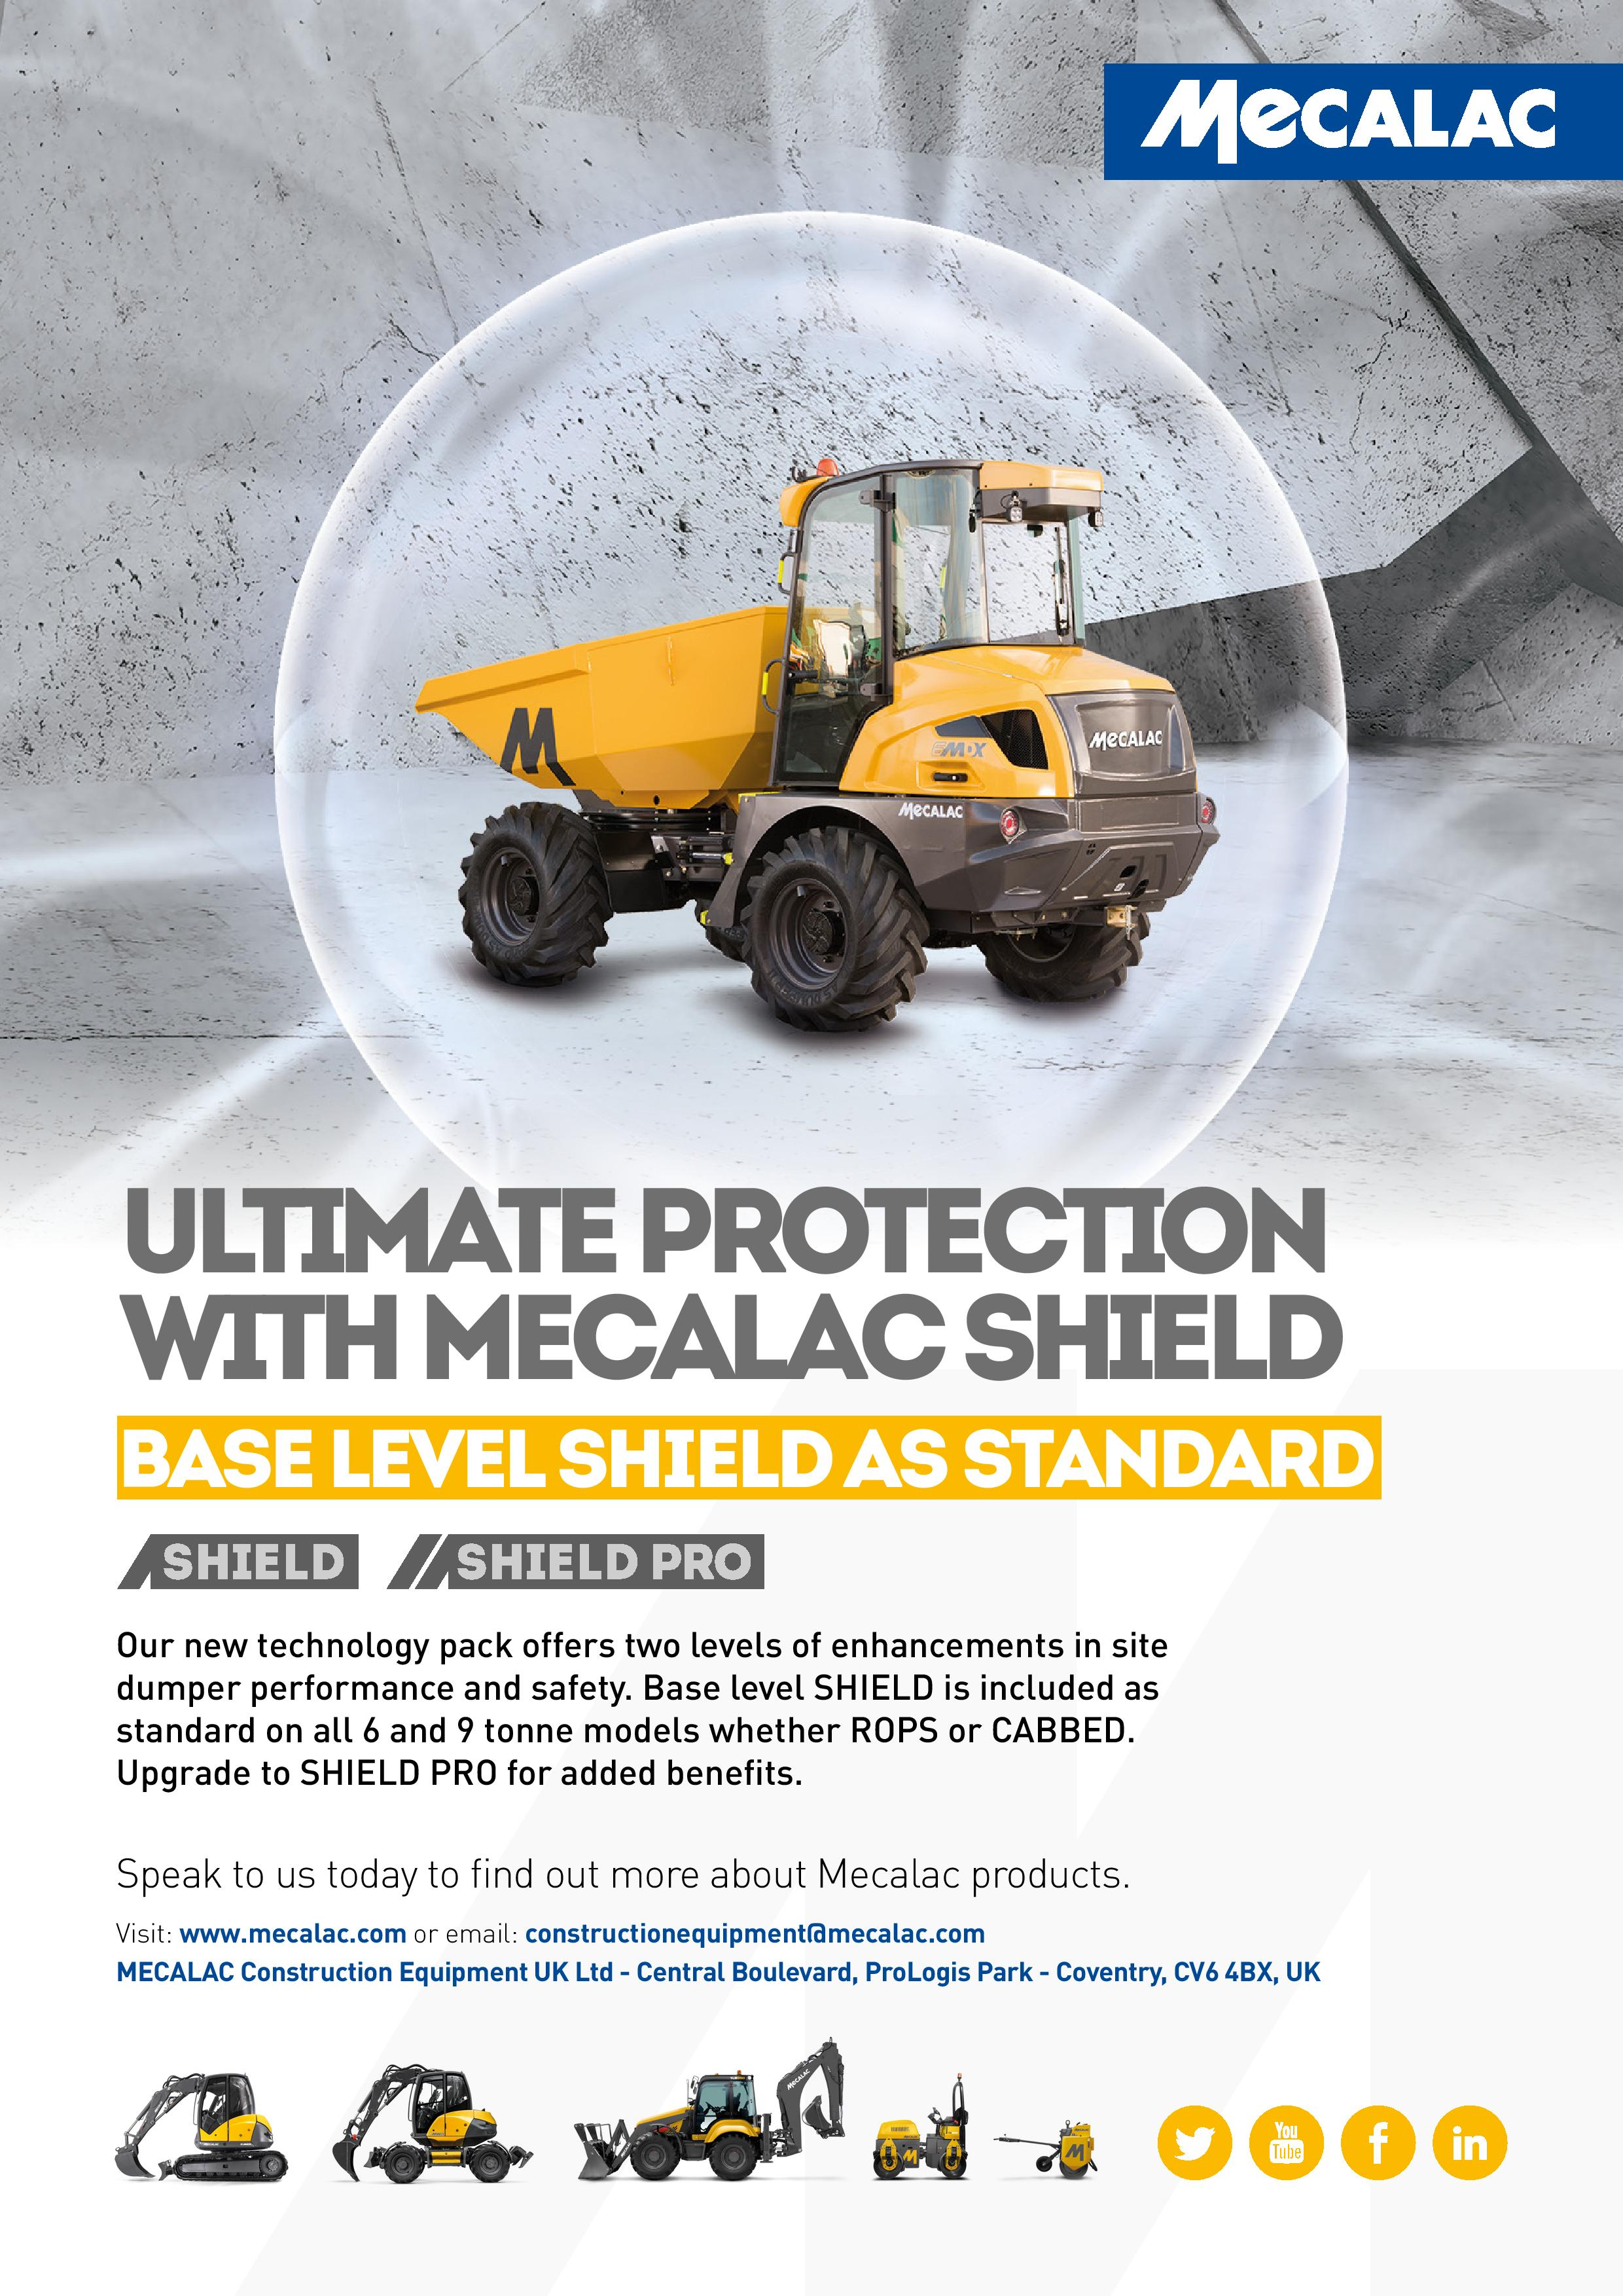 IR5114_Mecalac_Hillhead_Review_Edition_Full_Page_Advert_V4-page-001